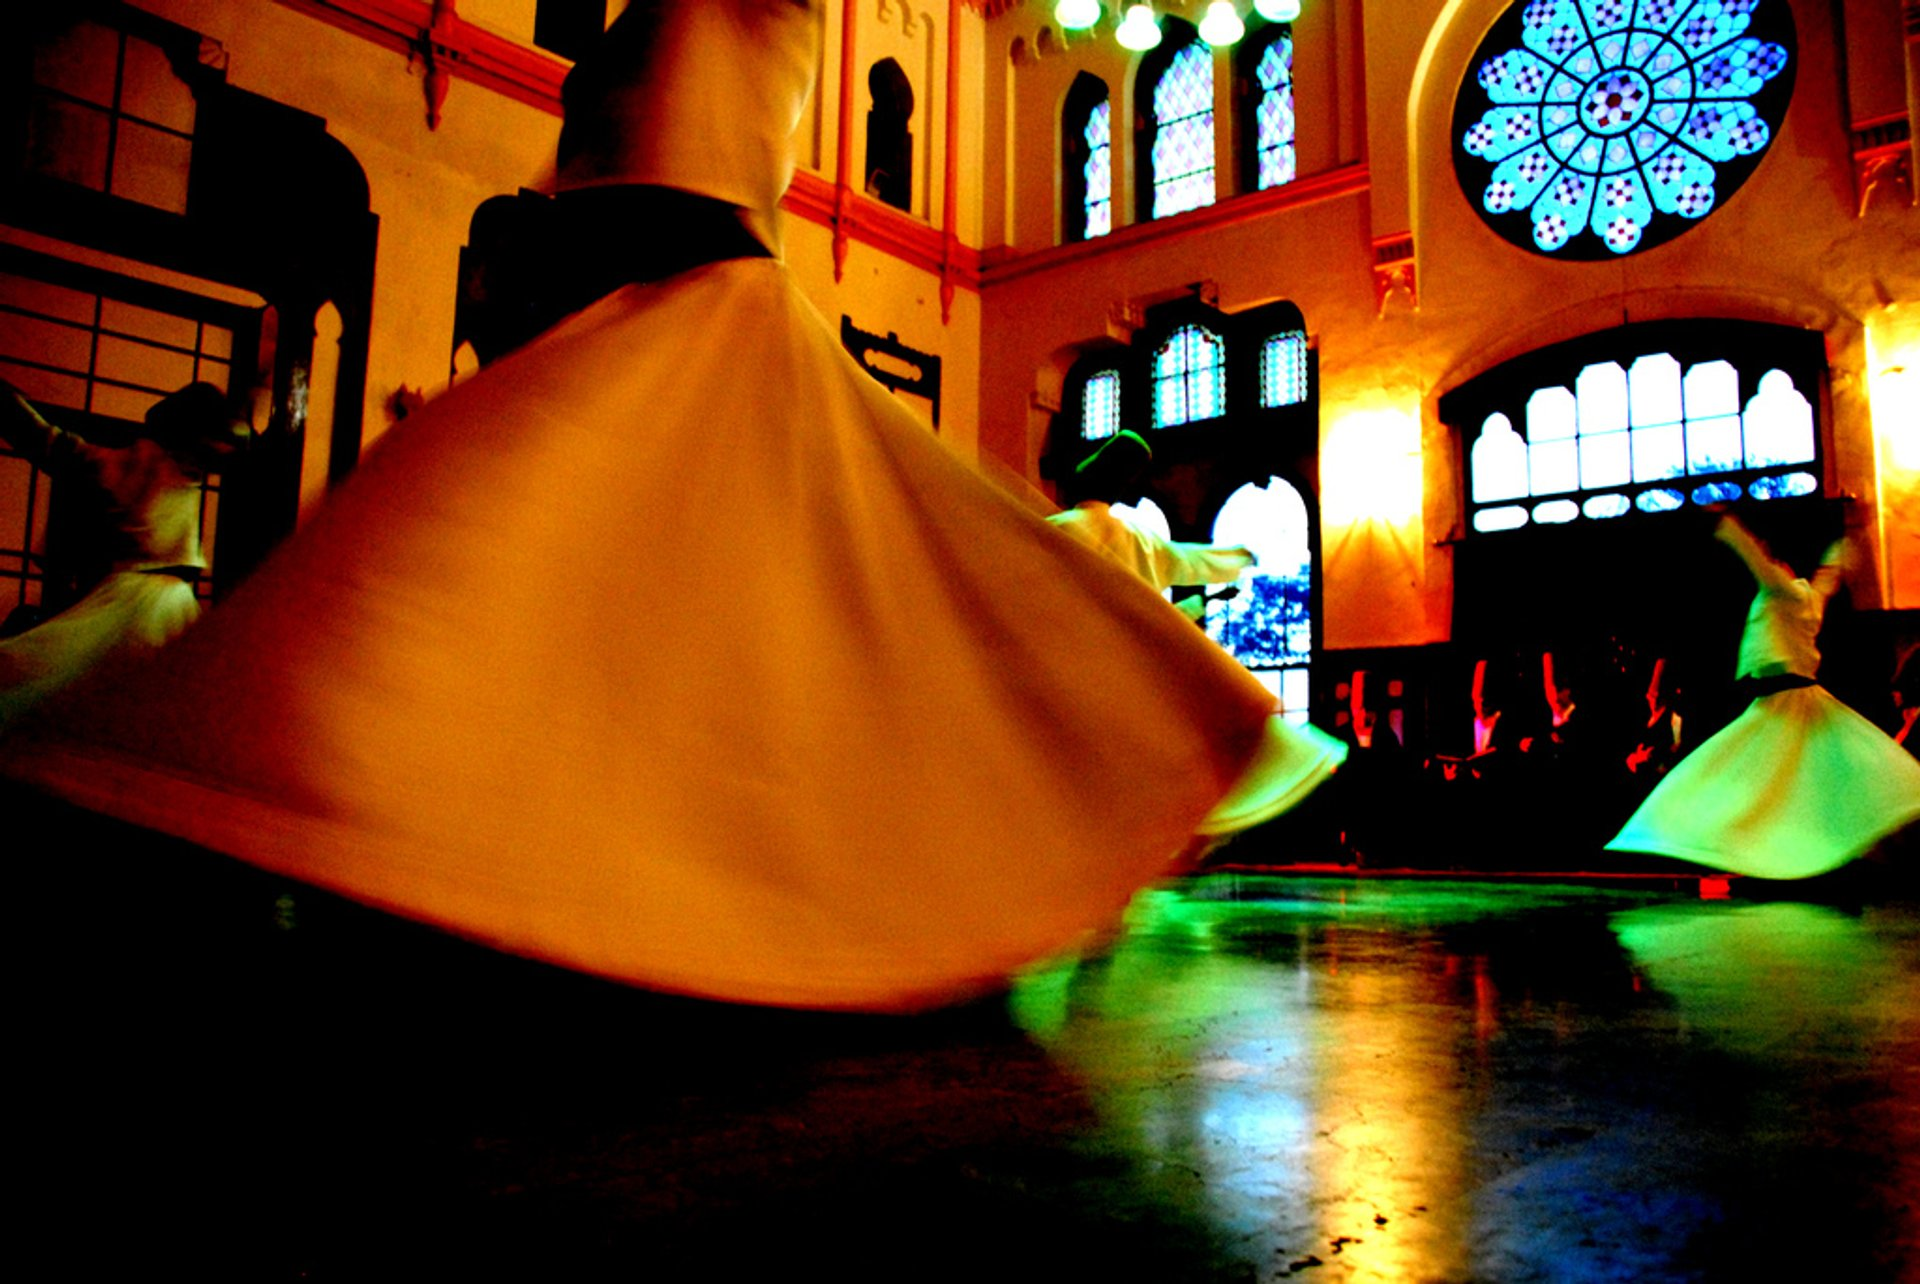 Whirling Dervish Sema Ceremony in Istanbul 2020 - Best Time